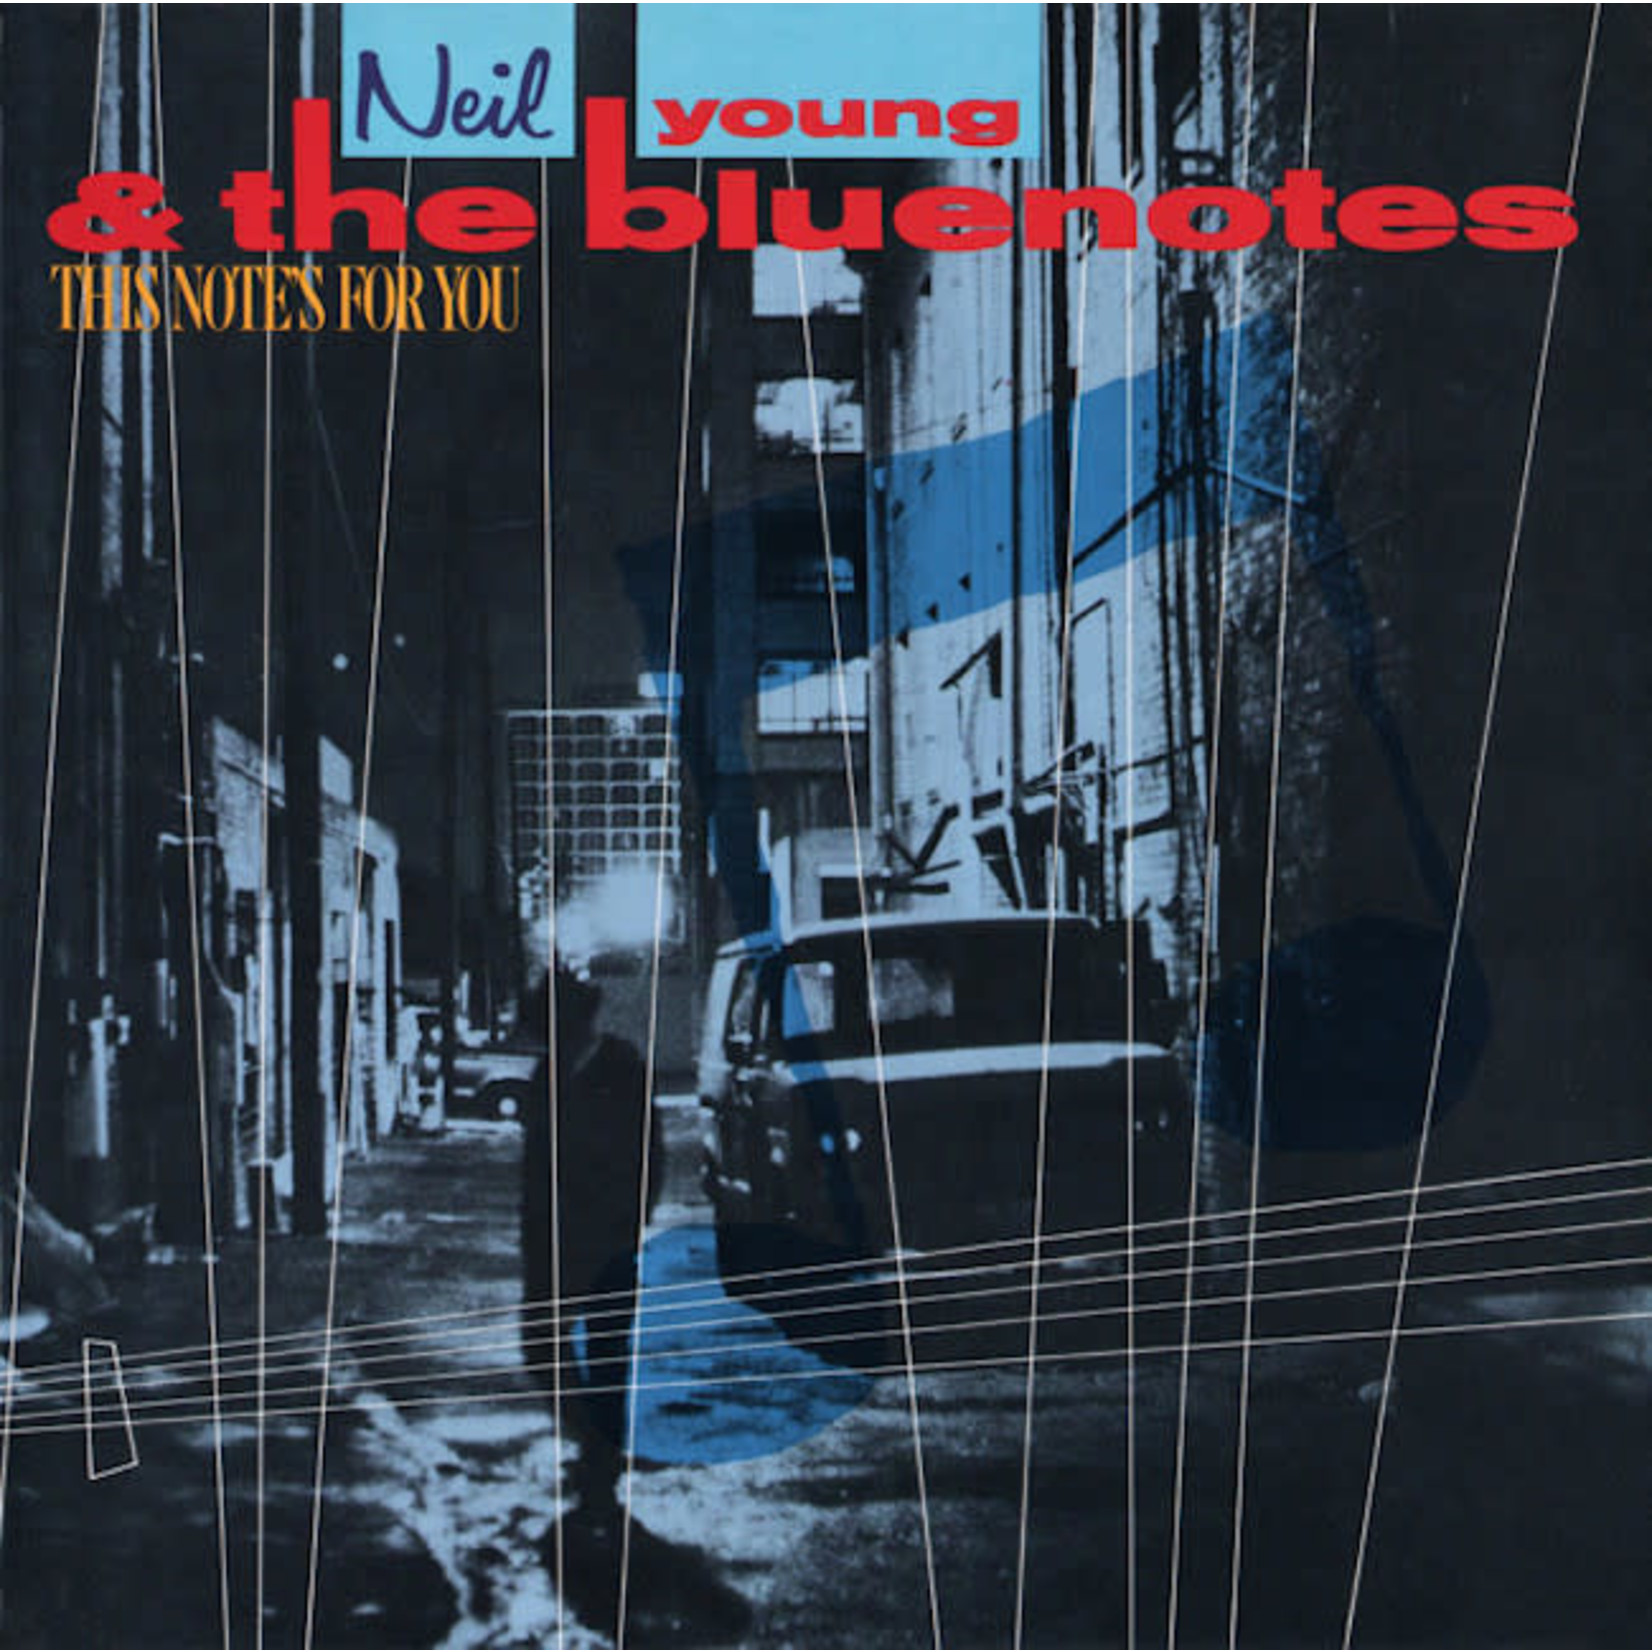 [Vintage] Young, Neil & the Bluenotes: This Notes for You